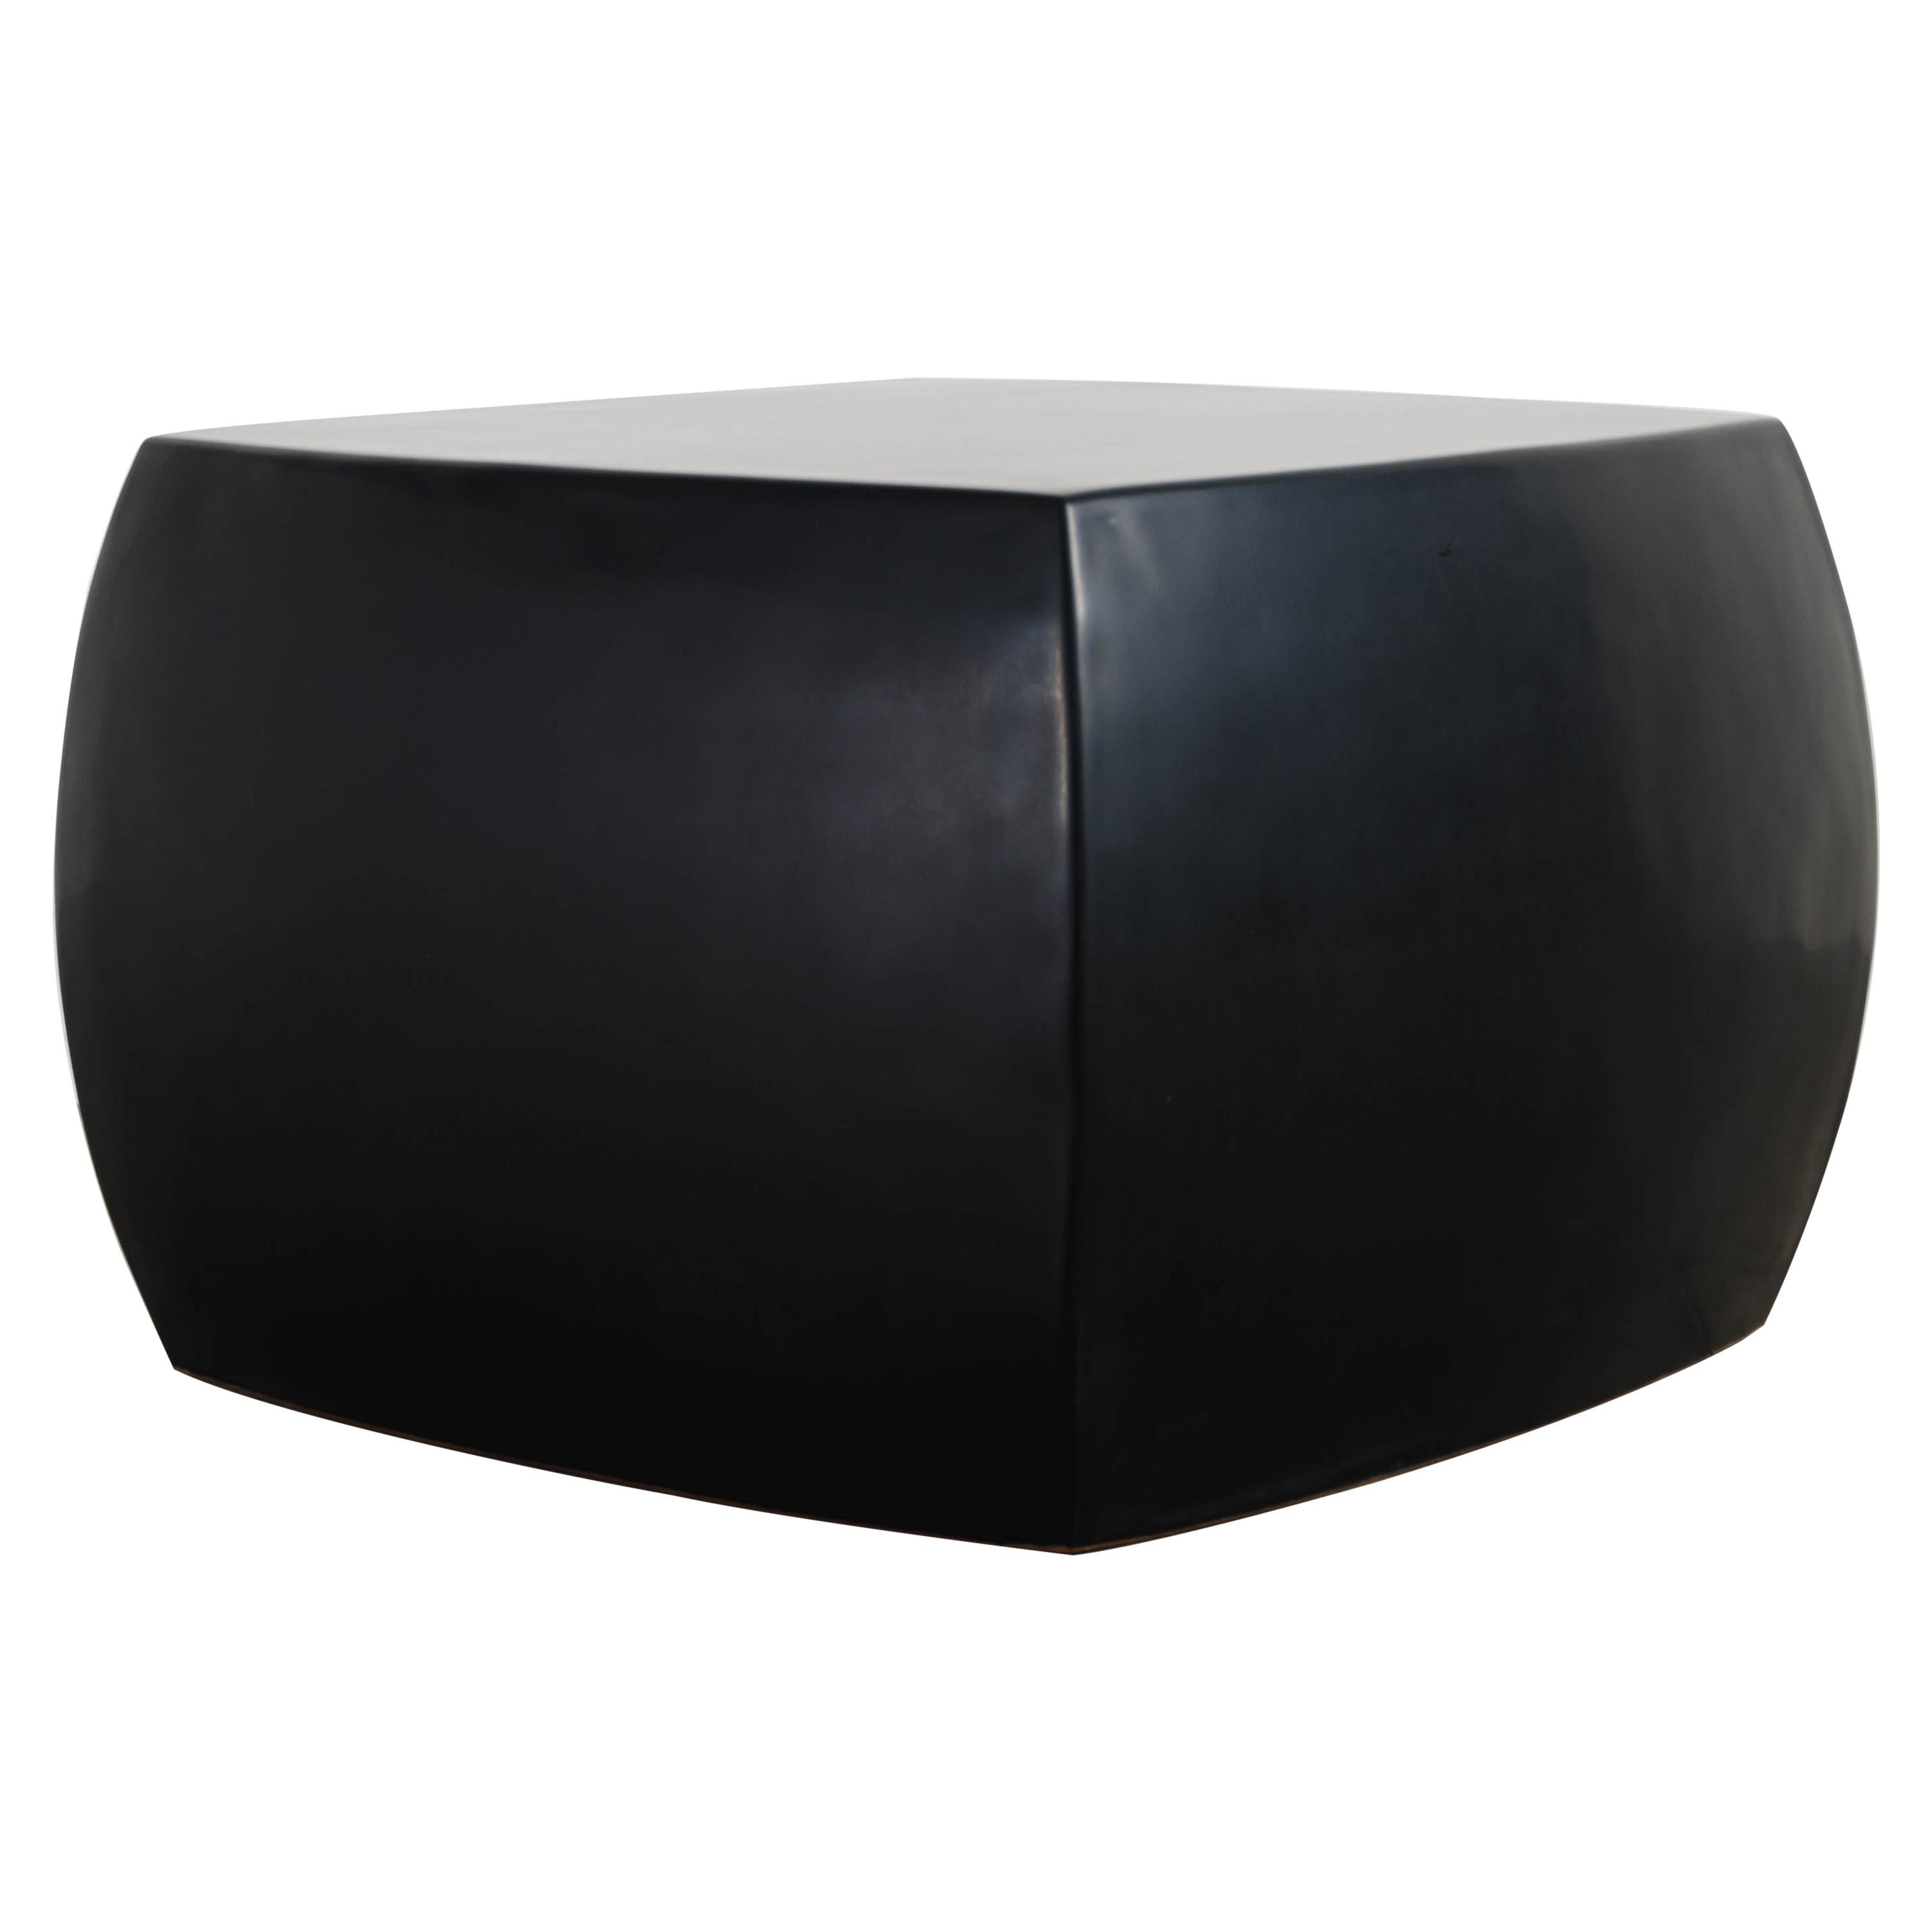 Rounded Square Stool, Black Lacquer by Robert Kuo, Hand Repousse, Limited